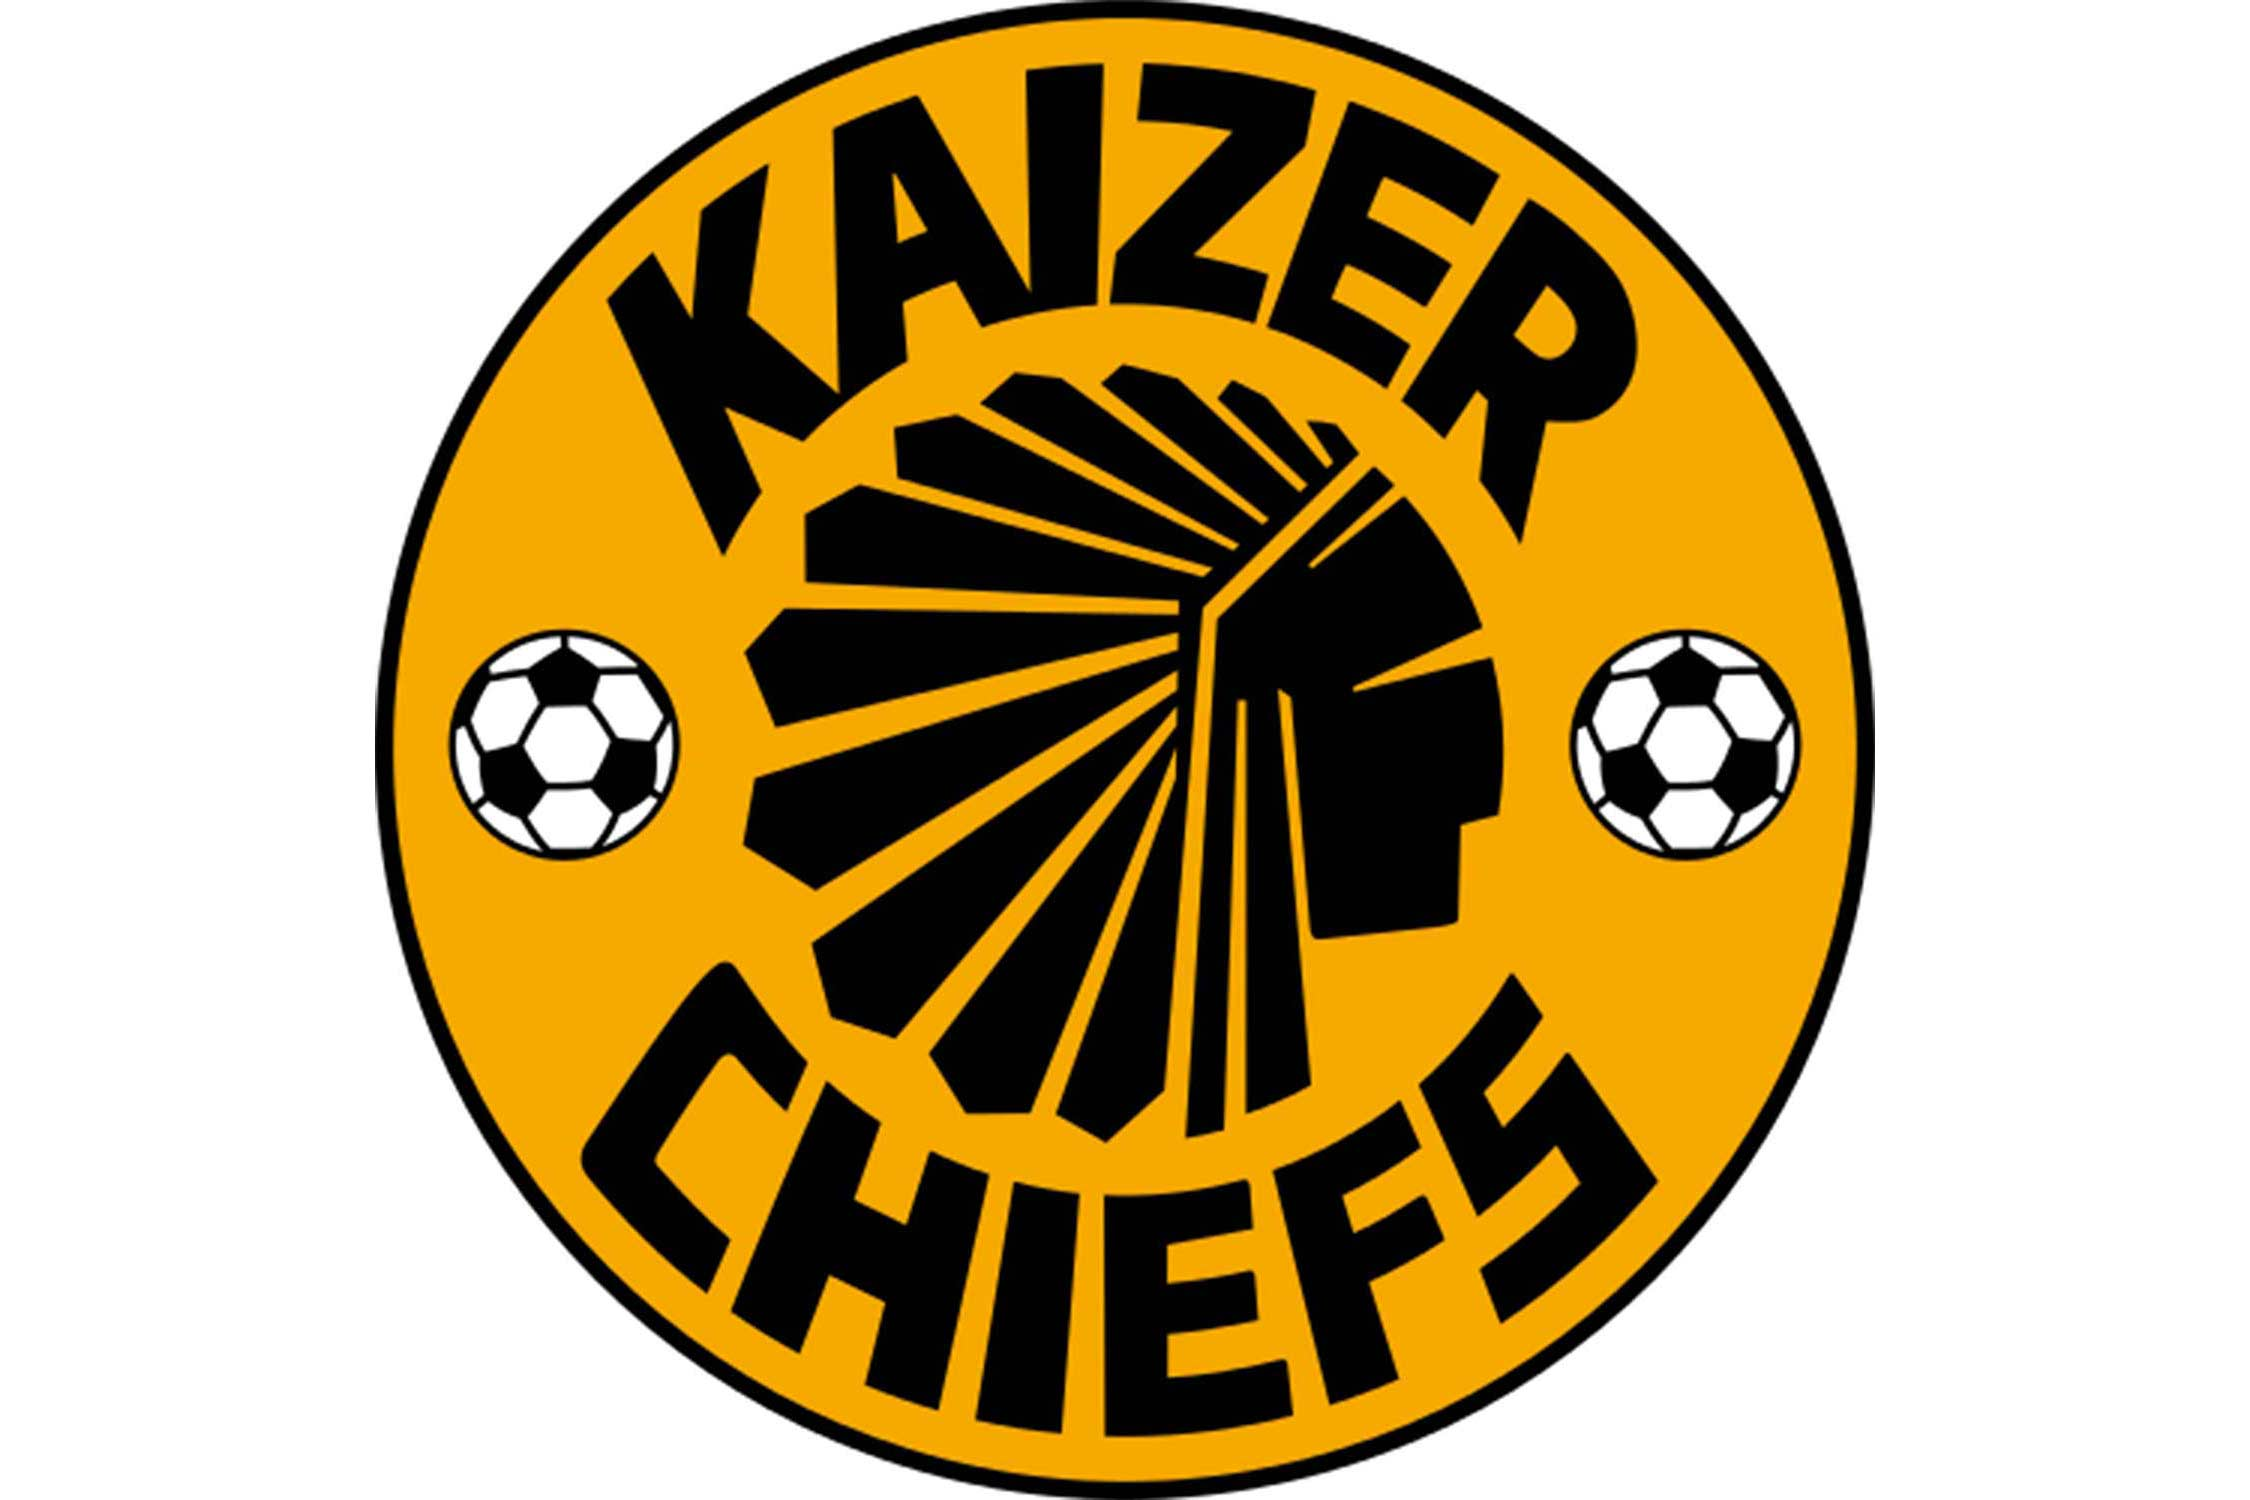 Club founder Kaizer Motaung played for the NASL's Atlanta Chiefs from 1968-71. Upon returning to his home country of South Africa he founded his own club in Johannesburg, naming it after himself and his old NASL club. The logo of the club is very similar, if not identical, to that of the Atlanta Chiefs.